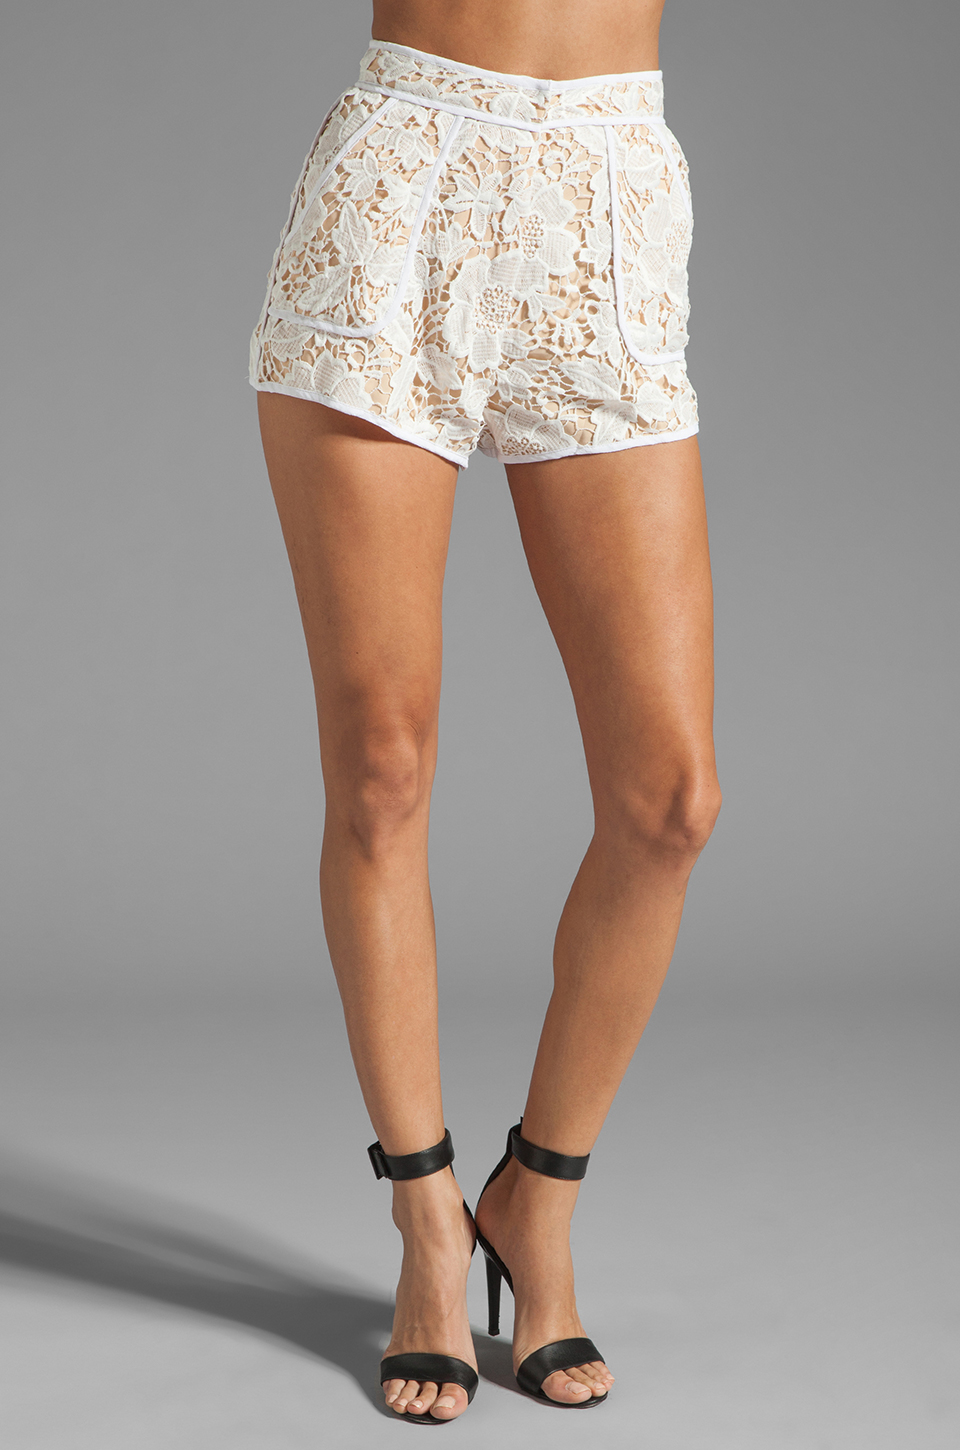 Cameo Brakelight Short in Ivory